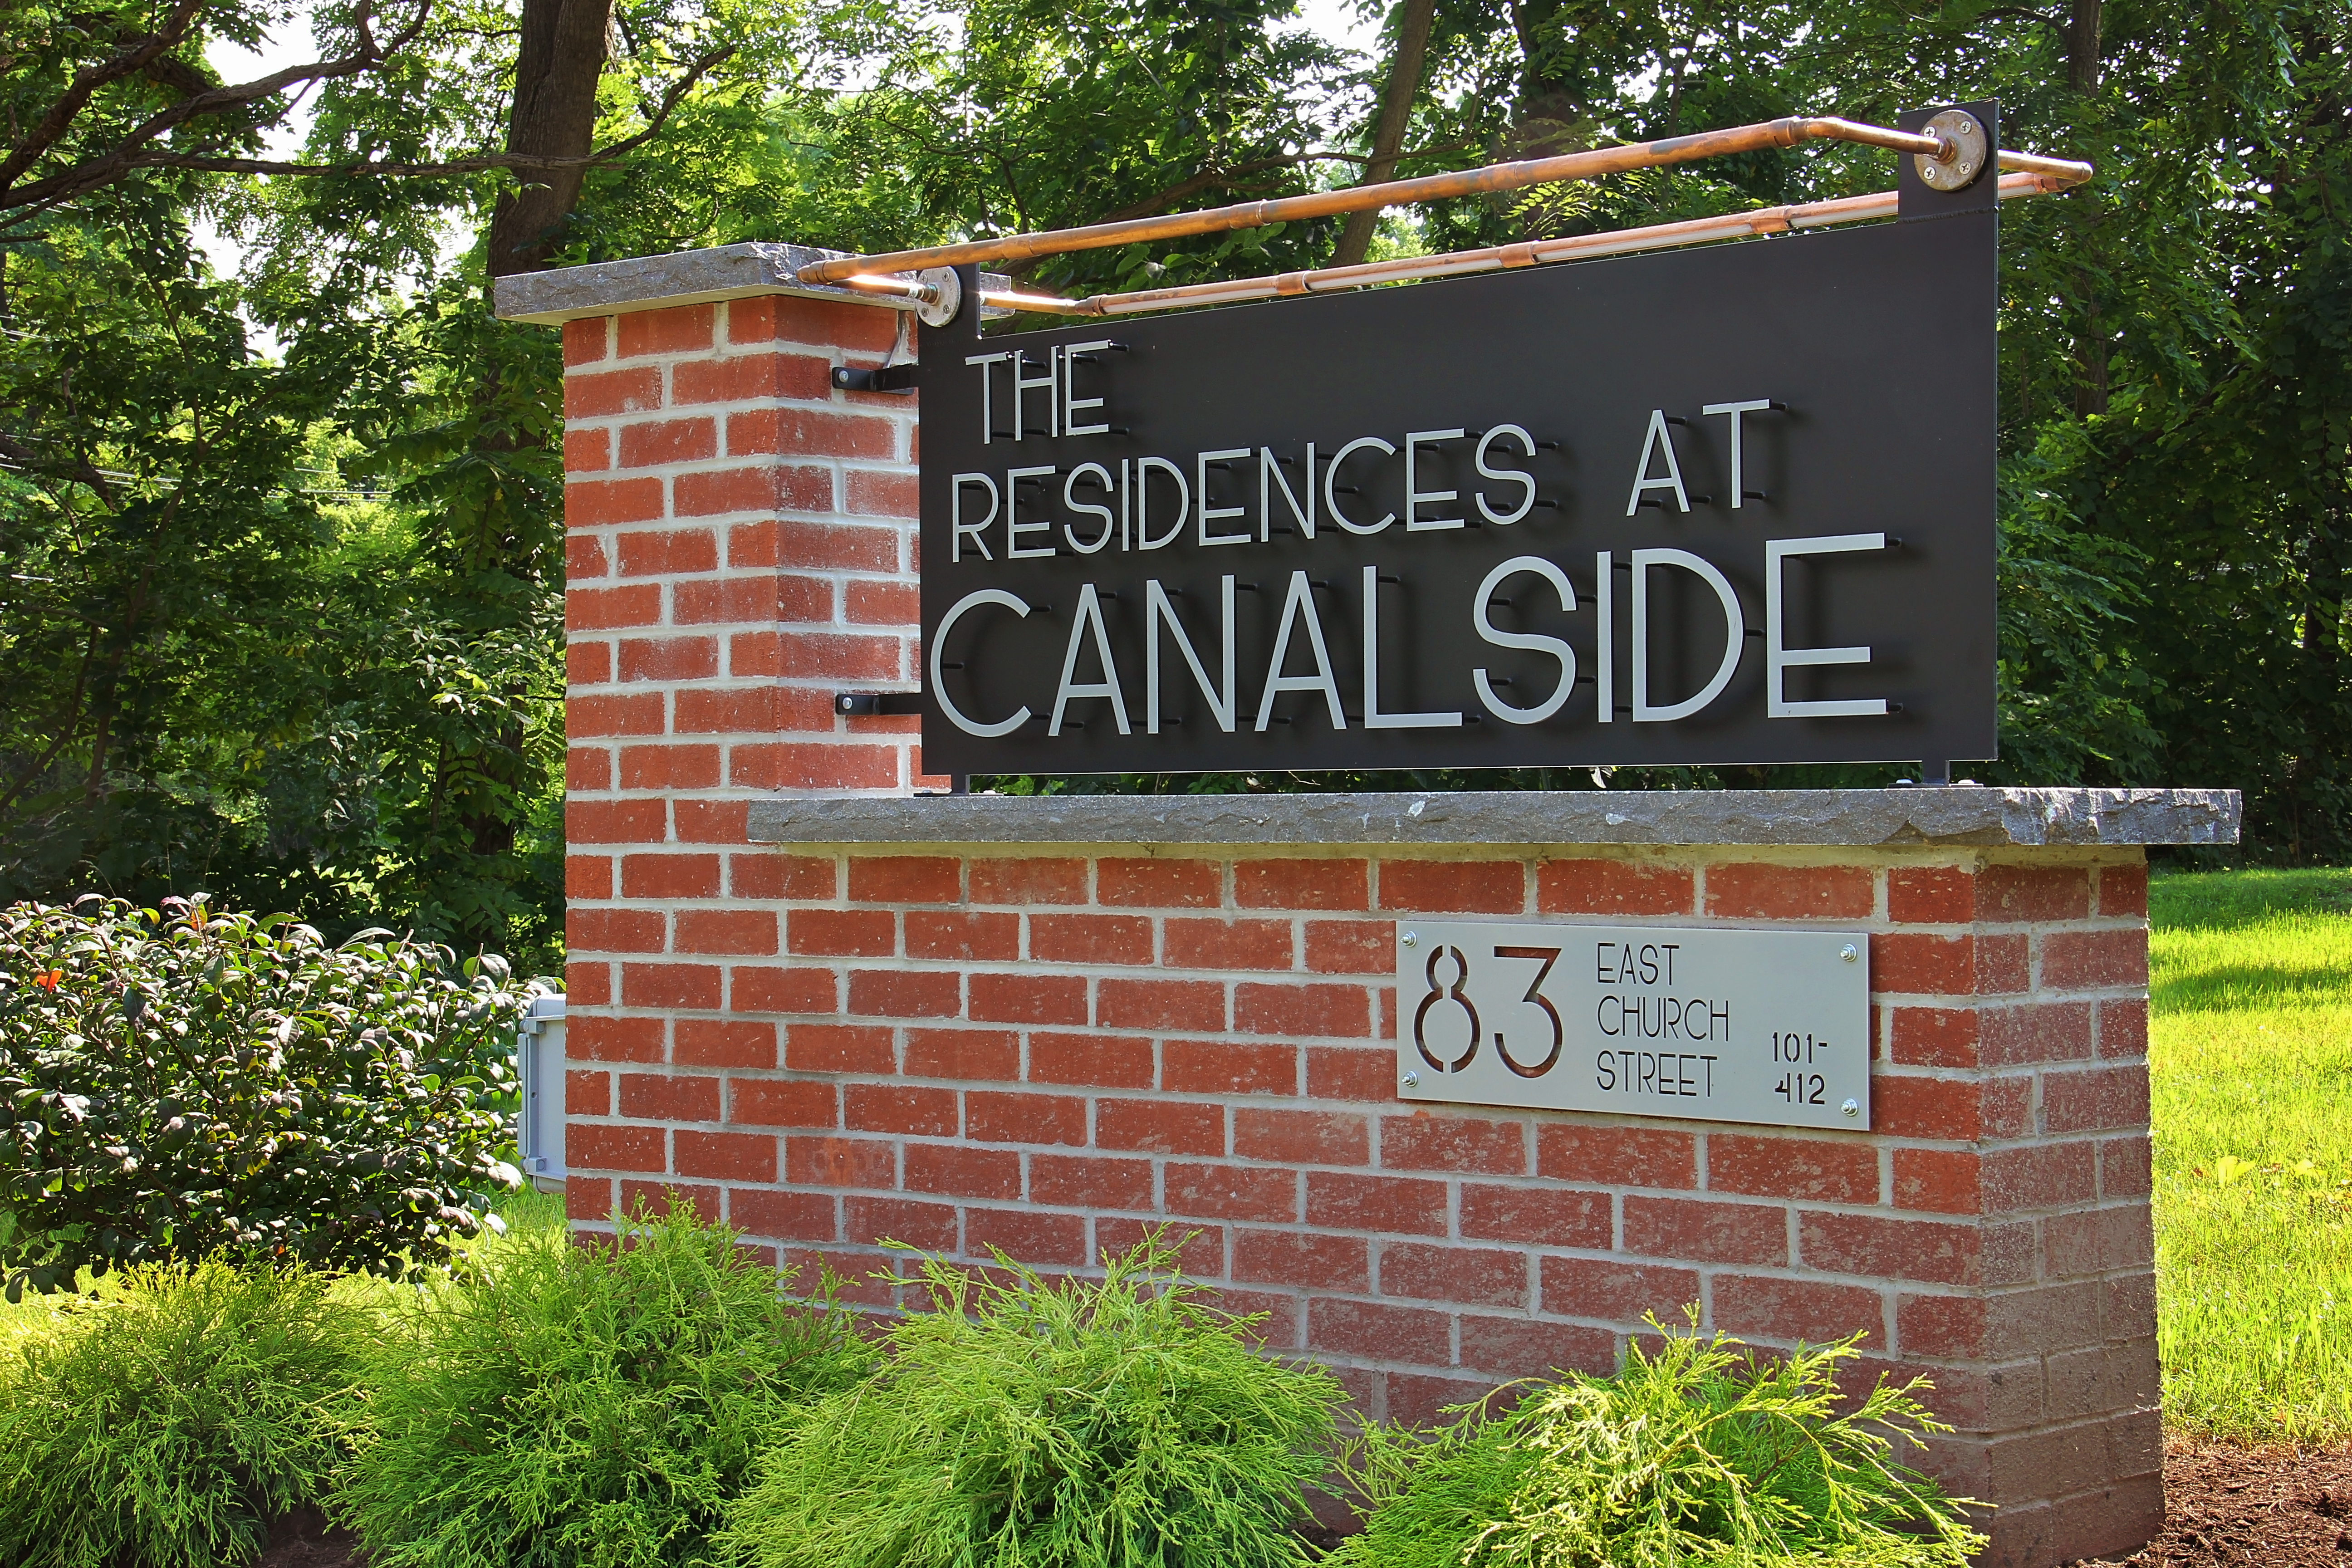 Residences at Canalside Signage